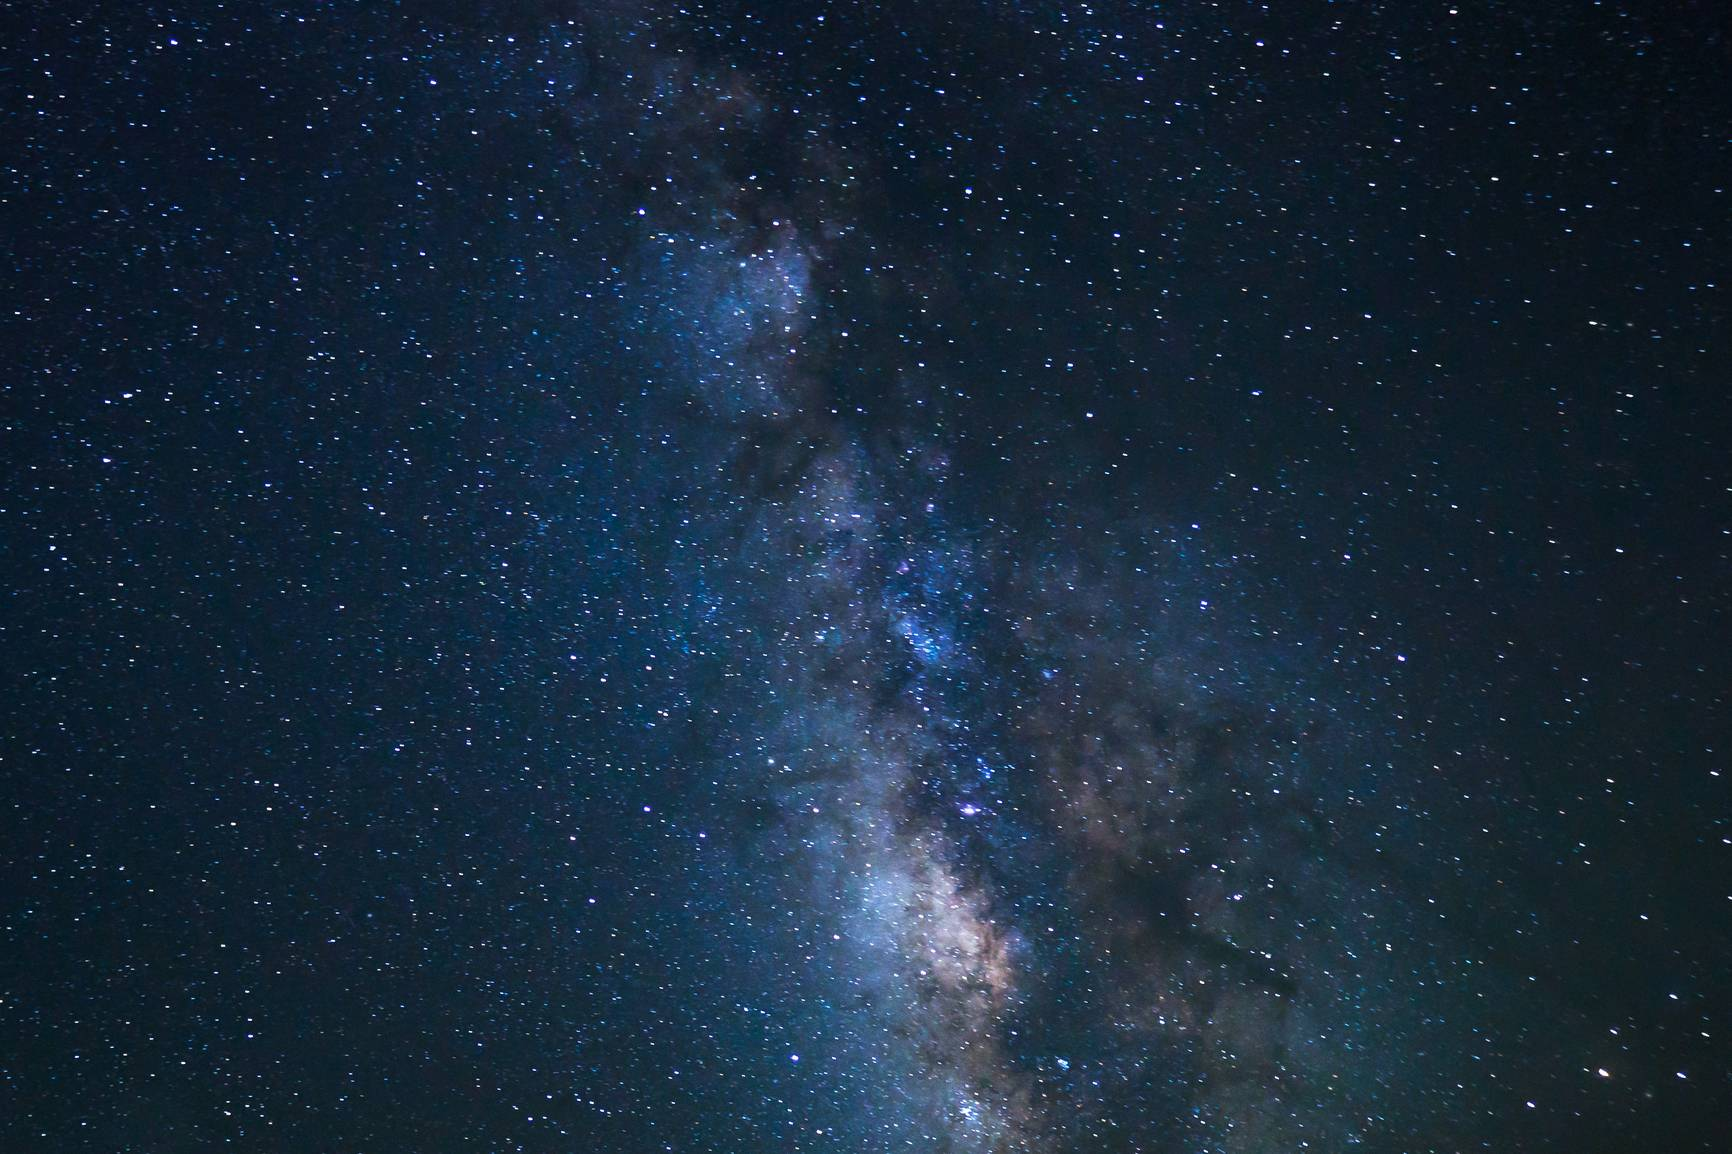 Night sky iphone wallpaper tumblr -  Beautiful Sunset Dark Blue Starry Sky Iphone 6 Wallpaper Ipod